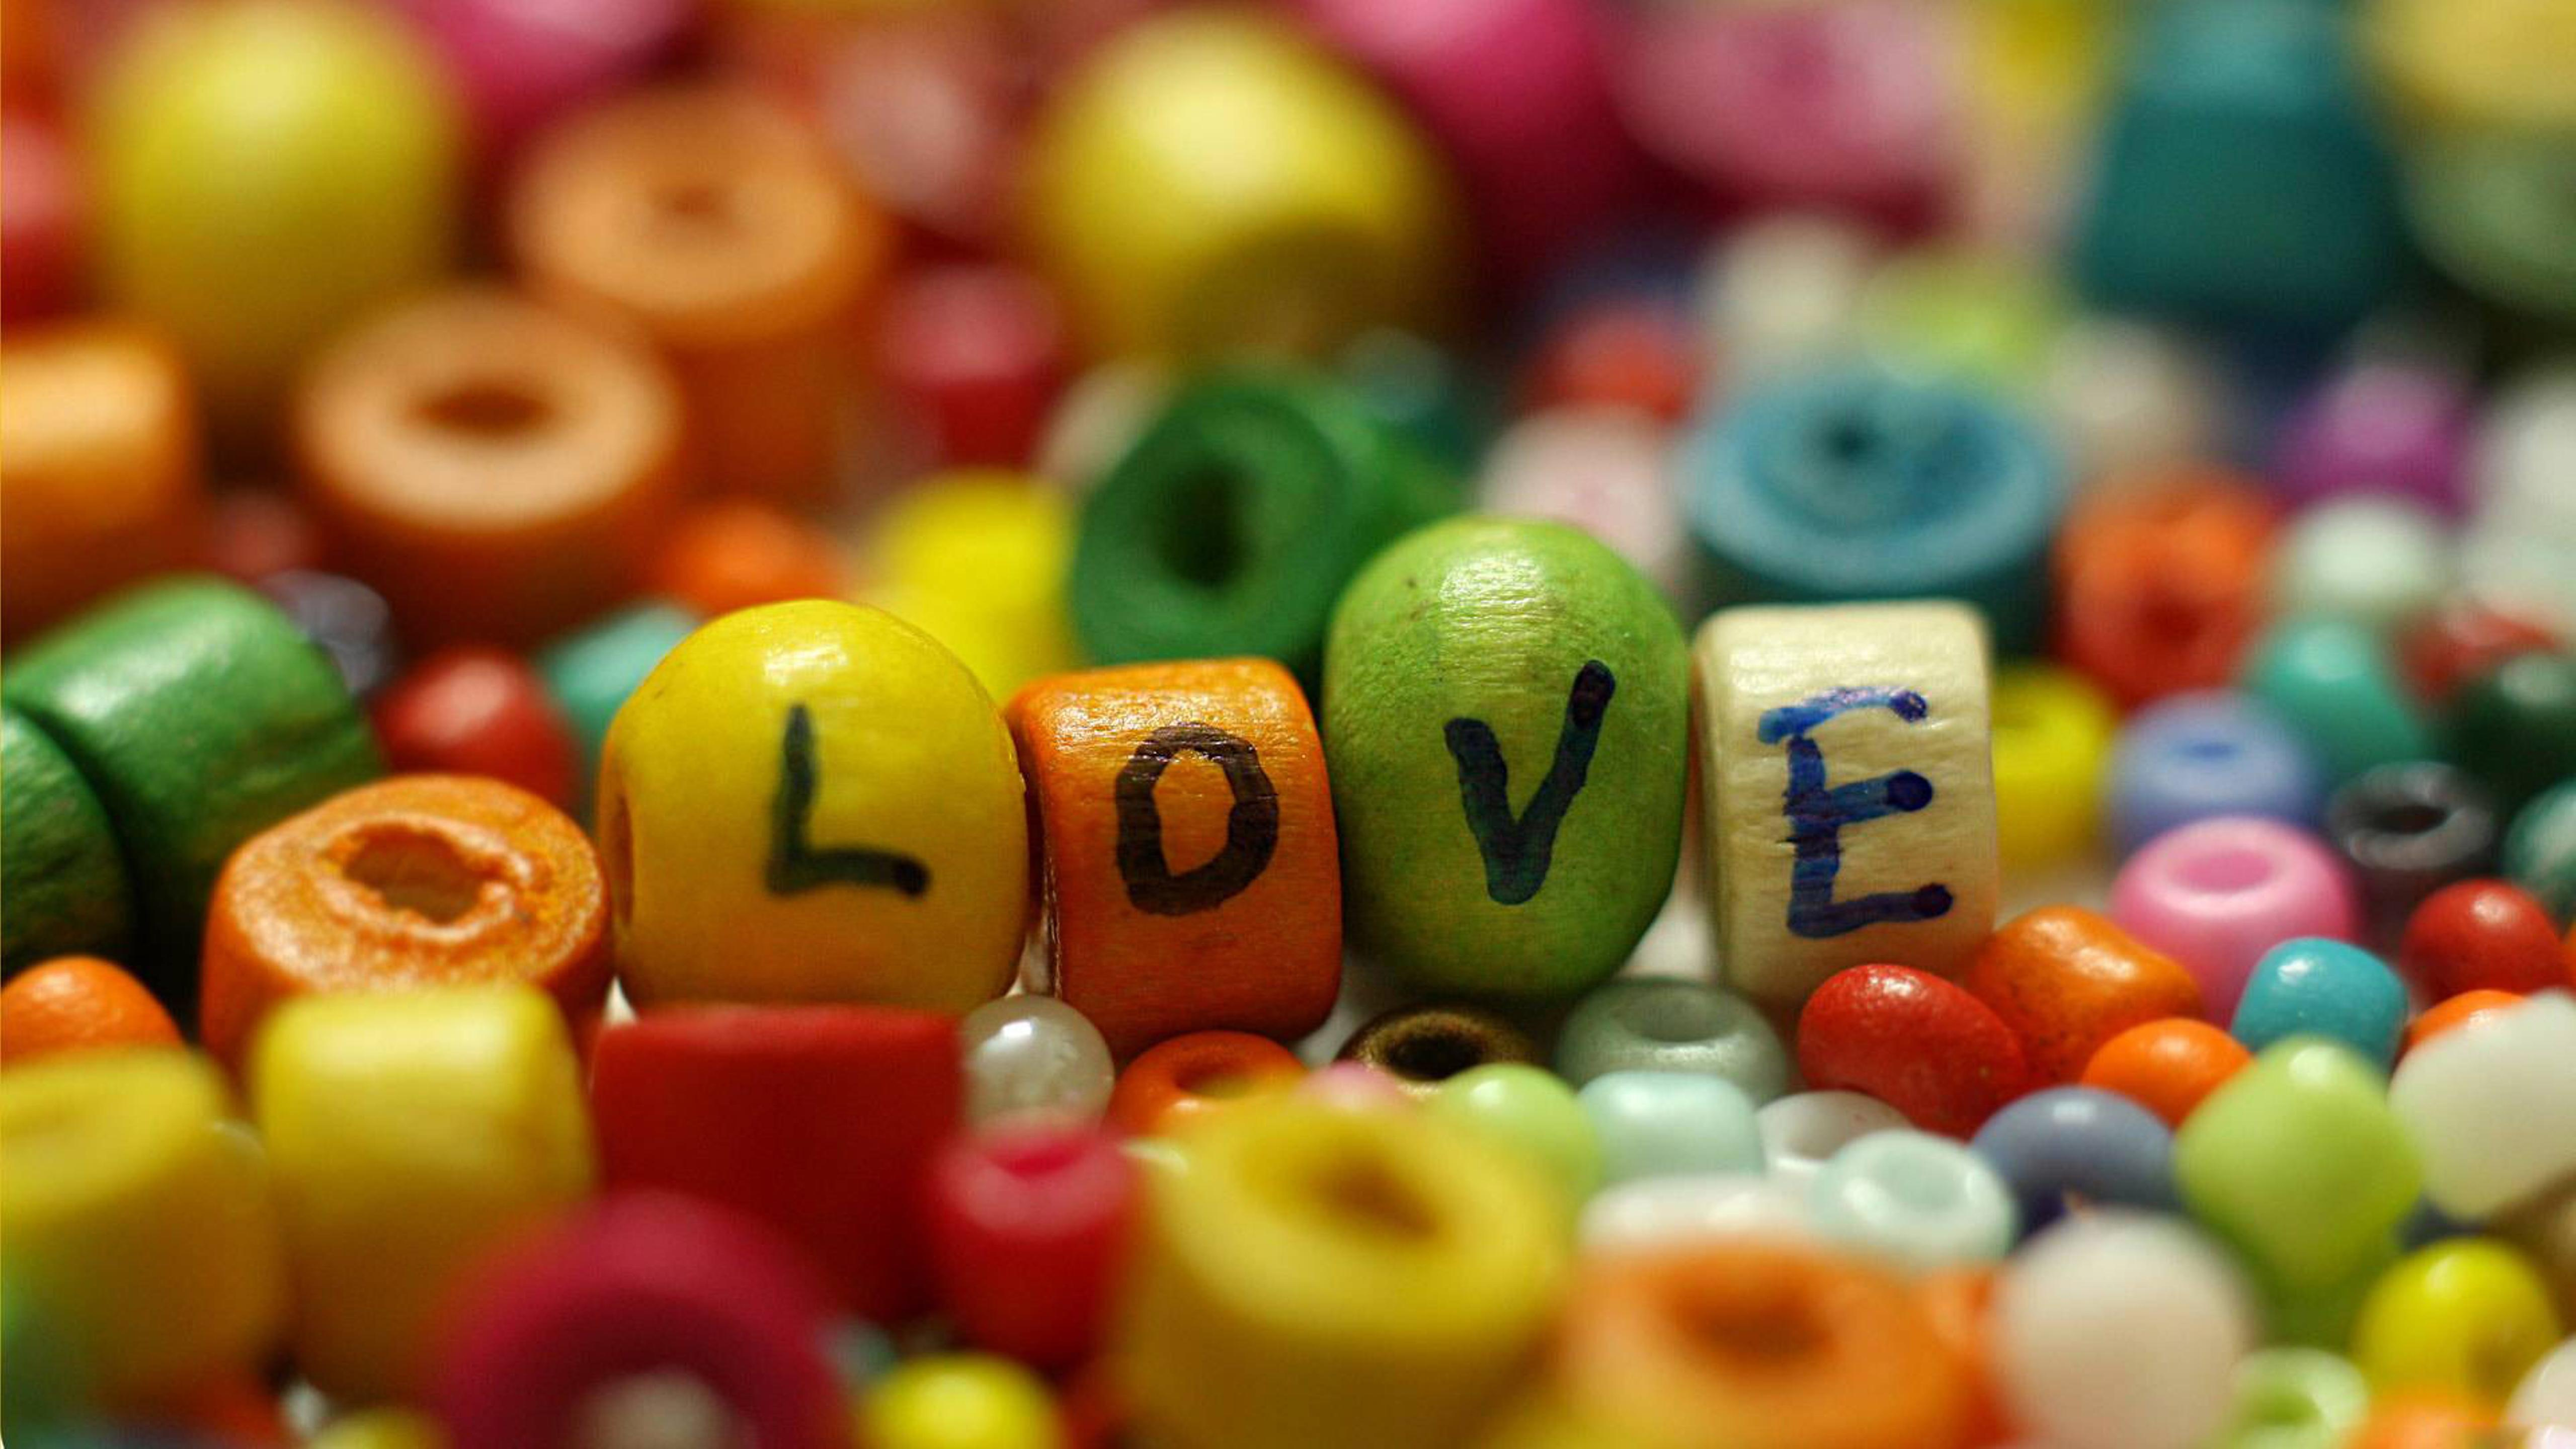 Love Wallpapers | Love HD Wallpapers